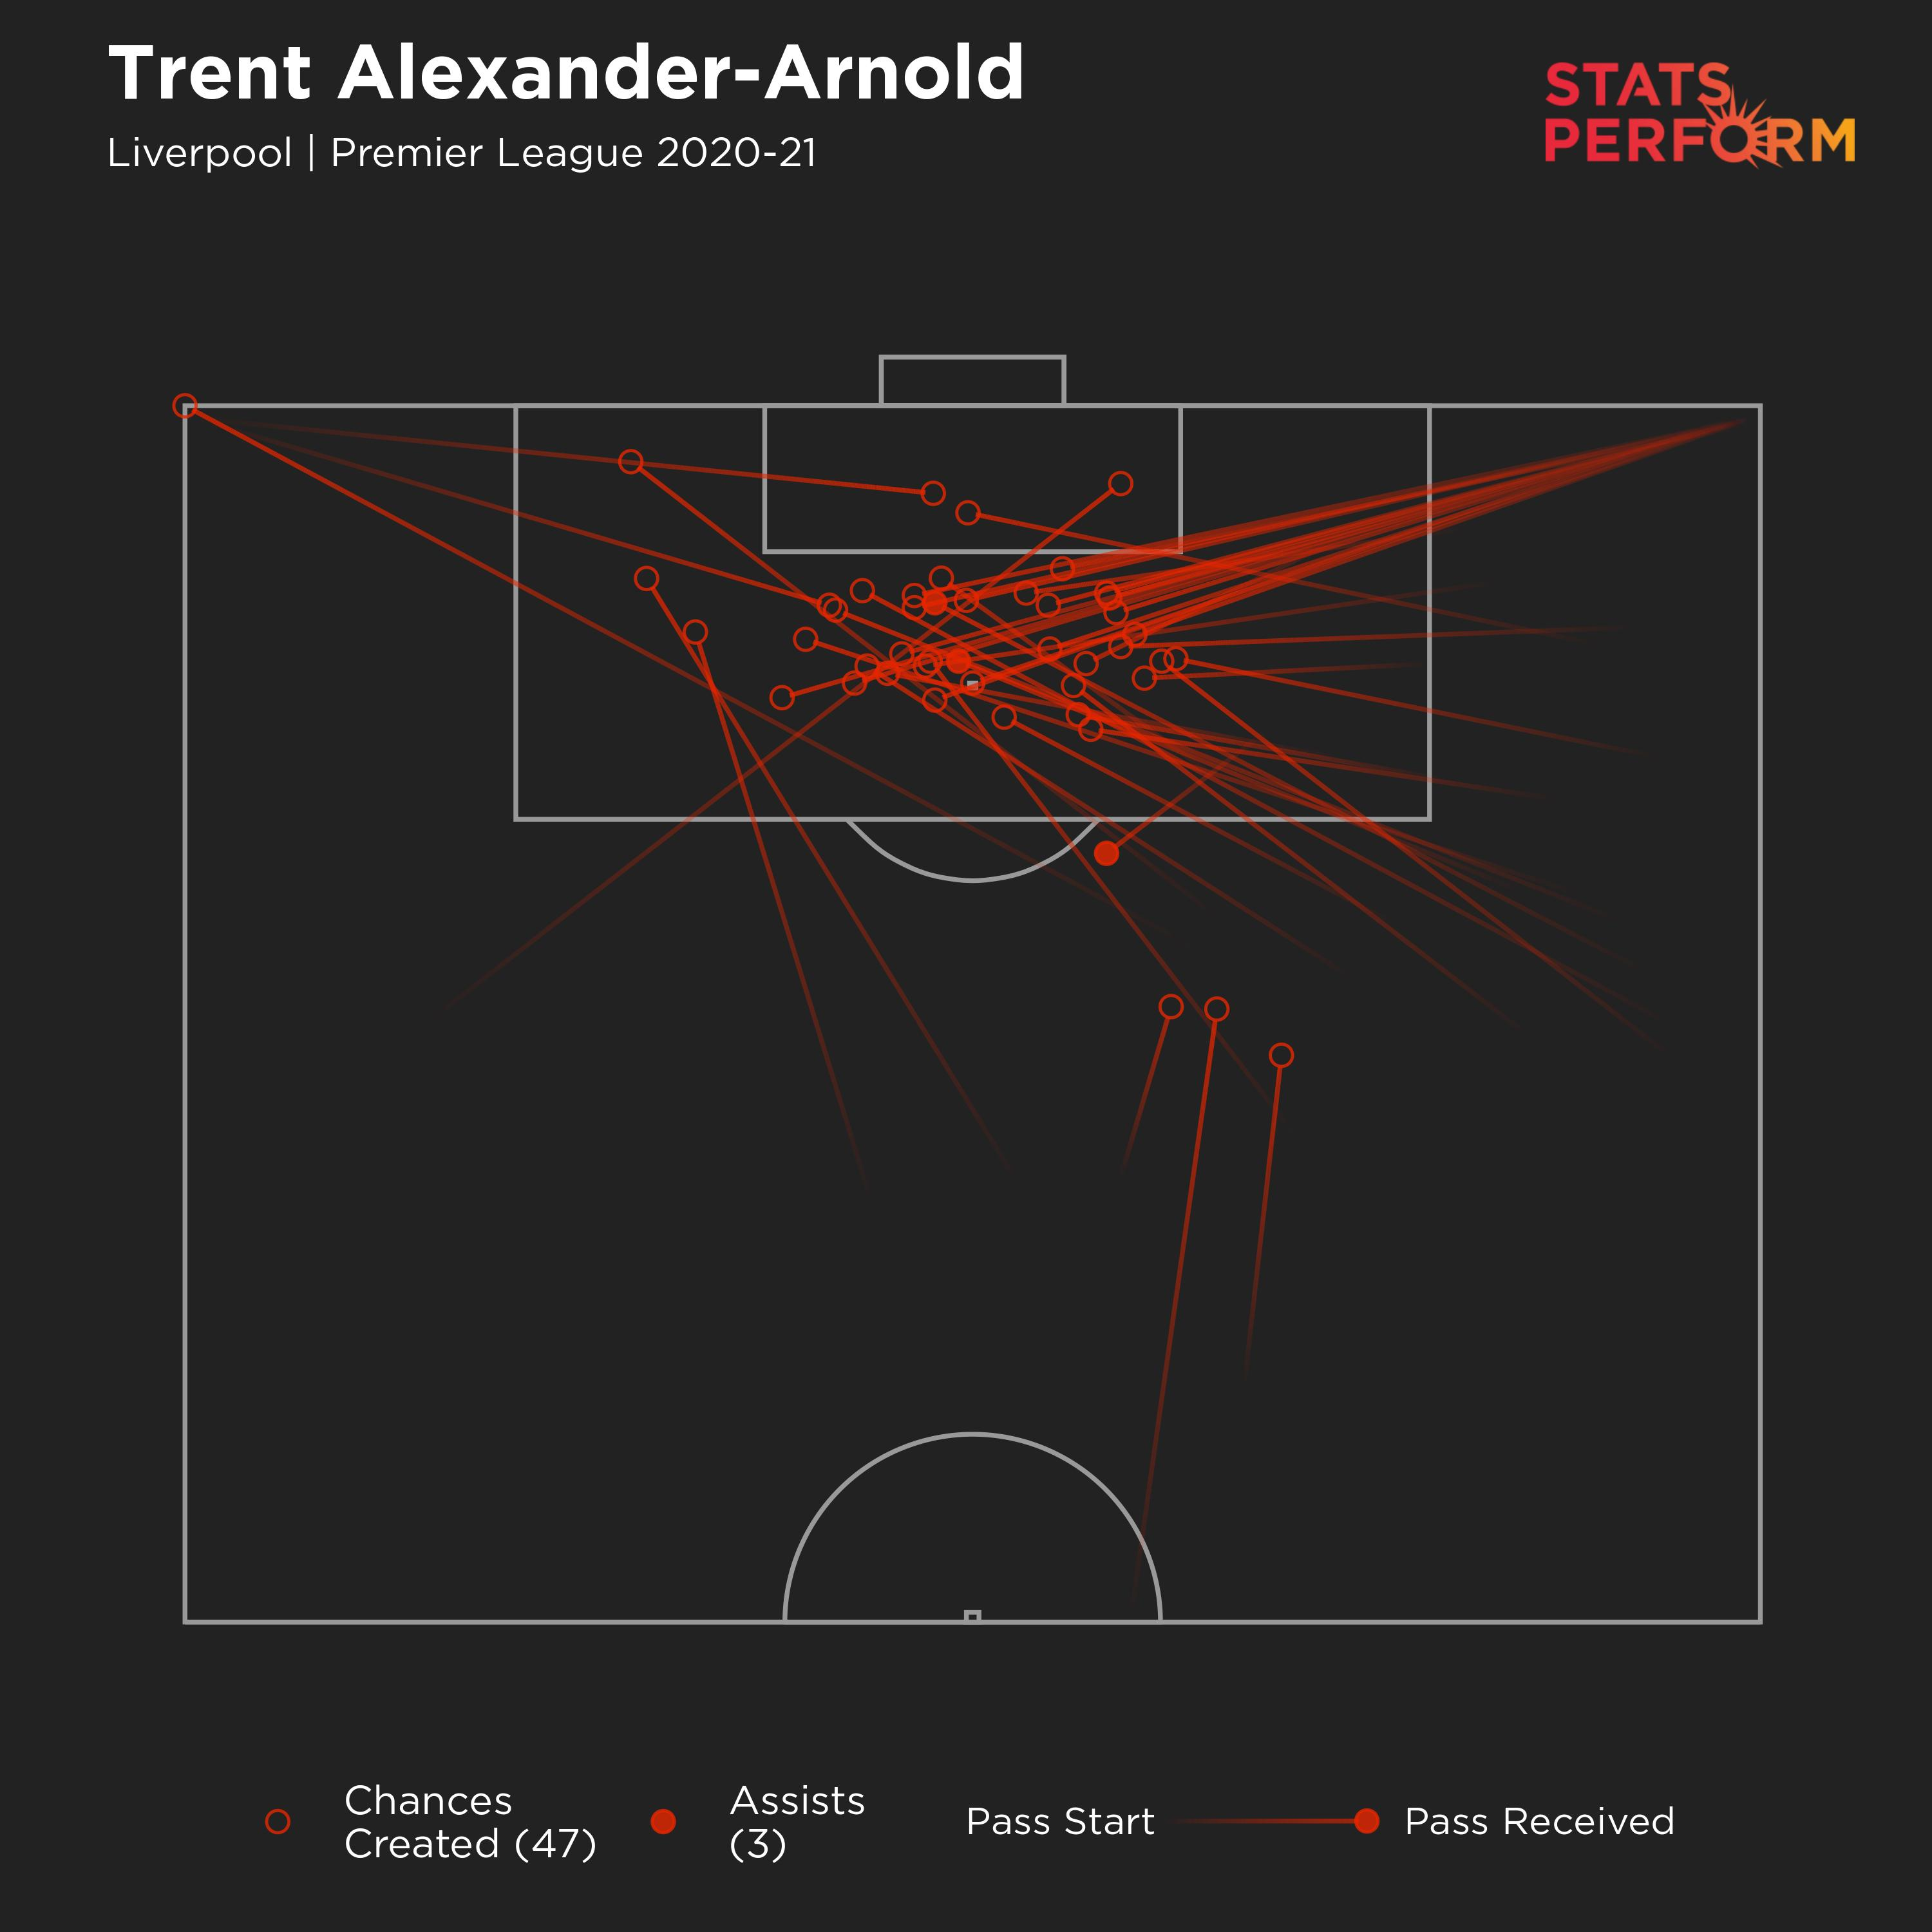 Trent Alexander-Arnold in the Premier League this season